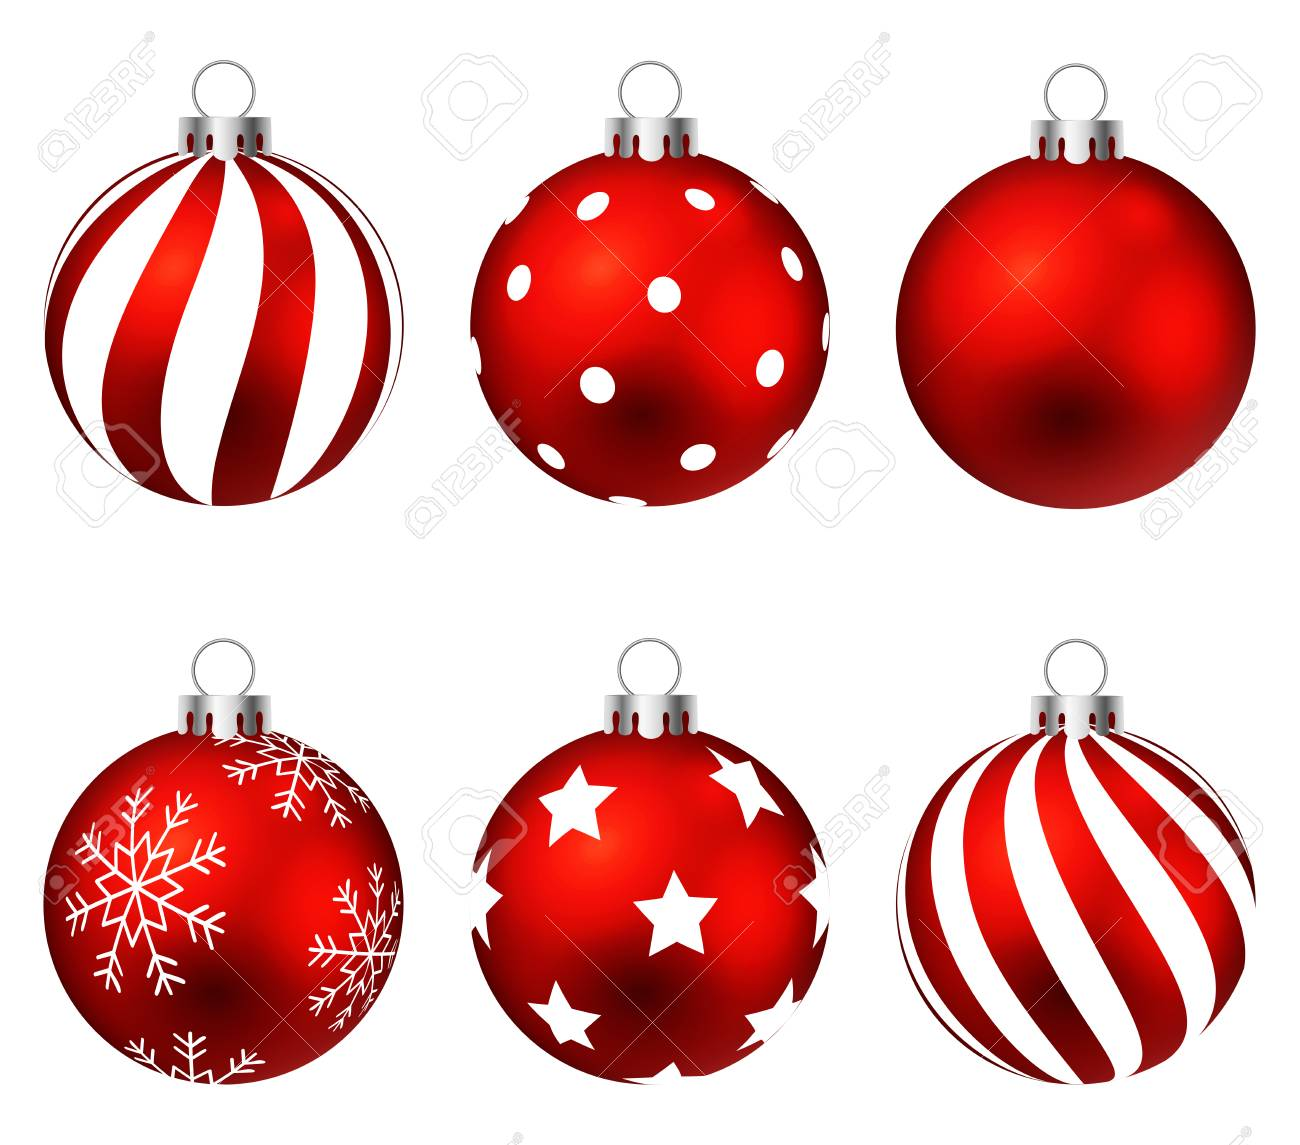 illustration red christmas balls on gift bows isolated on white setillustration